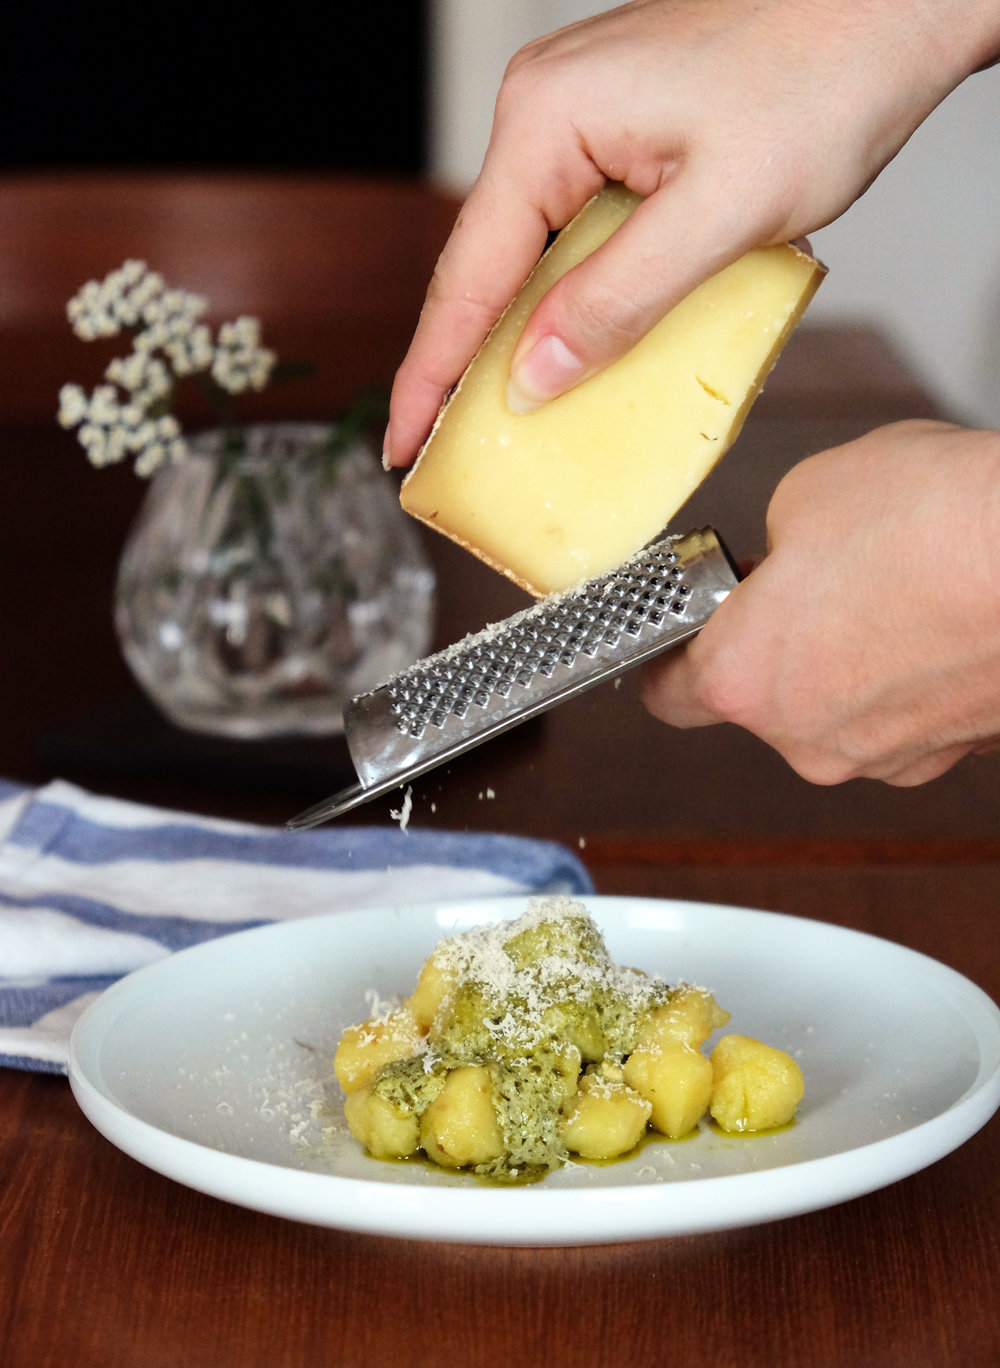 grating cheese.jpg